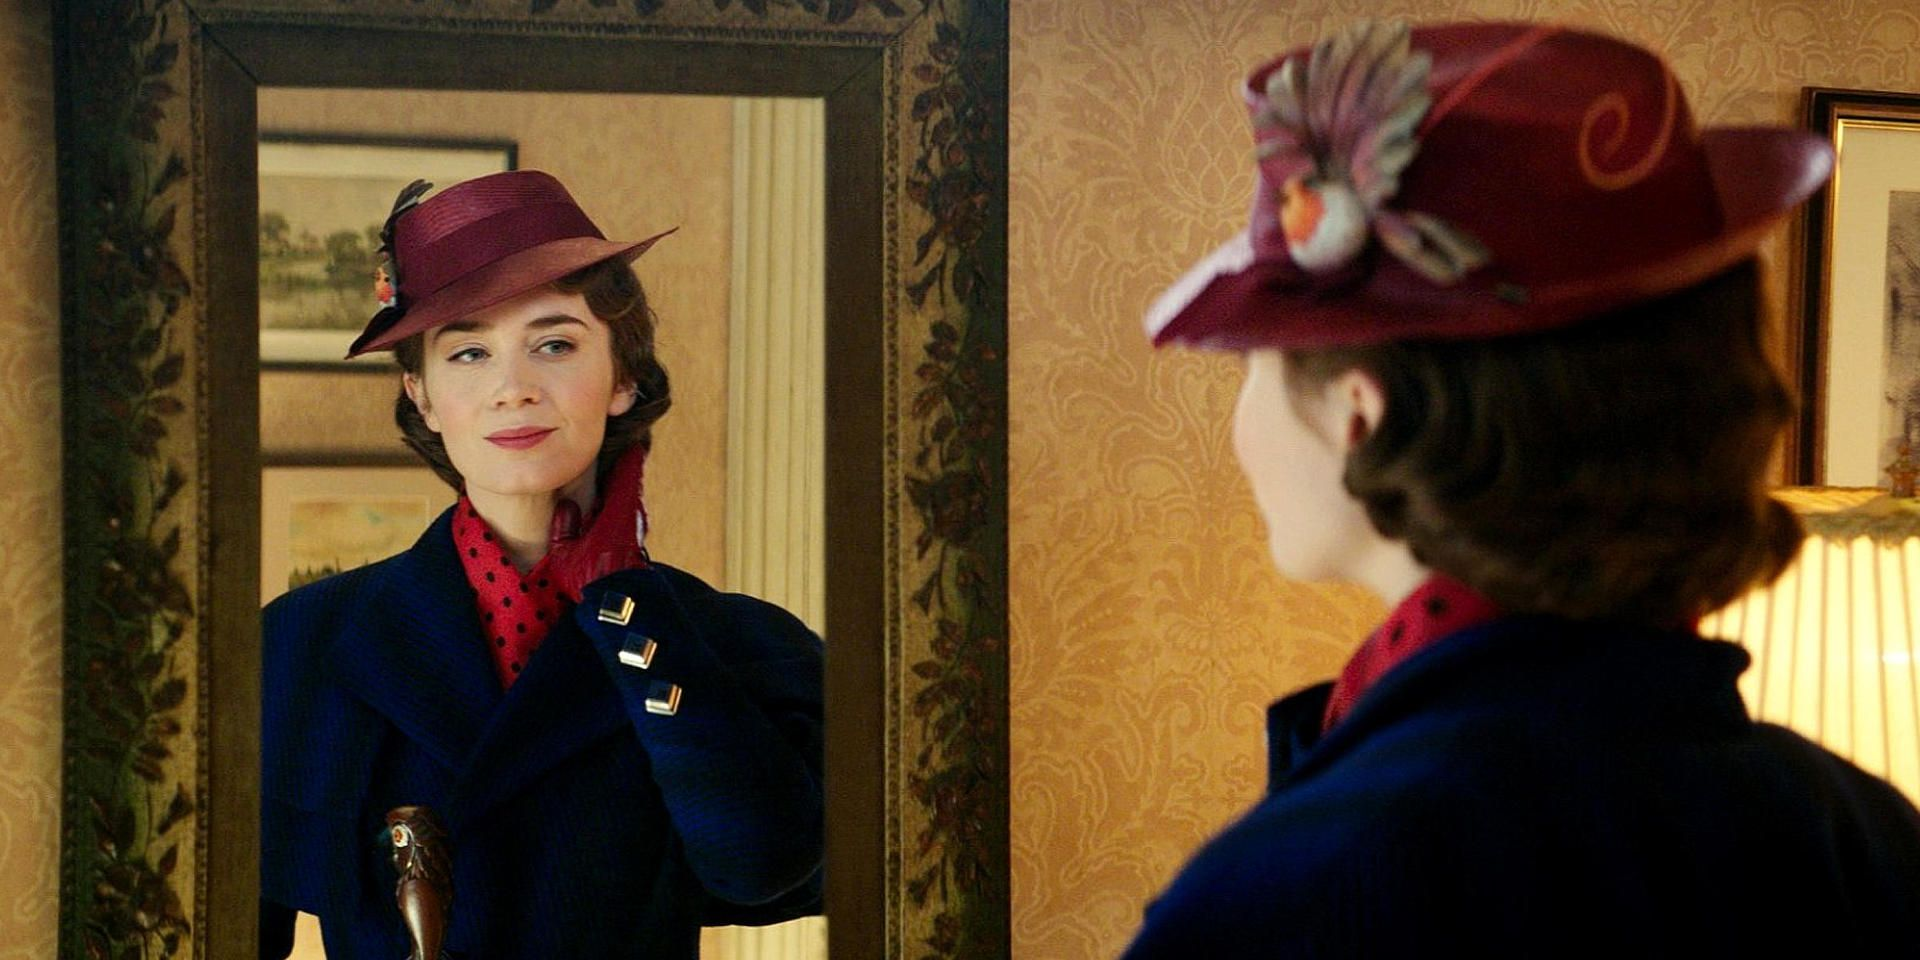 British Actress Emily Blunt Stars In The New Film Mary Poppins U2013 Fresh Air  At 4 Pm